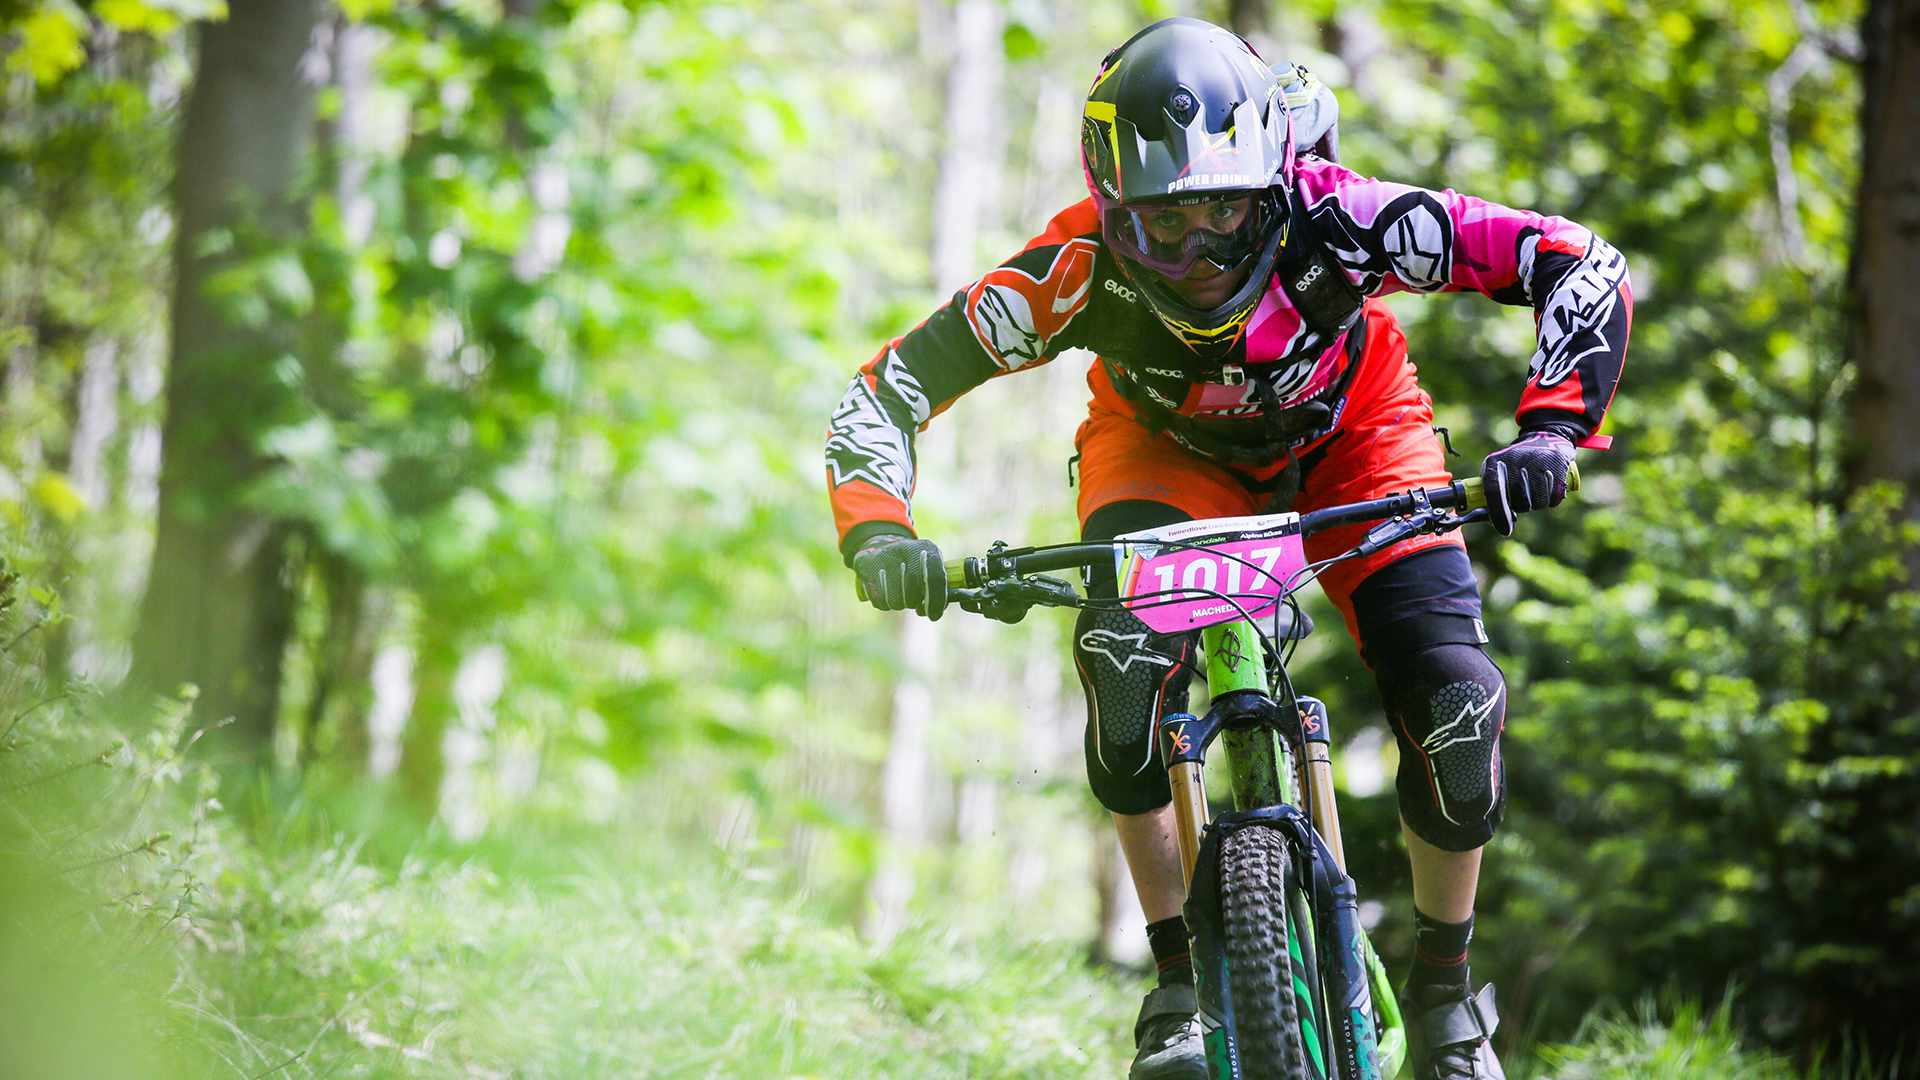 Here's why you should scratch that enduro itch